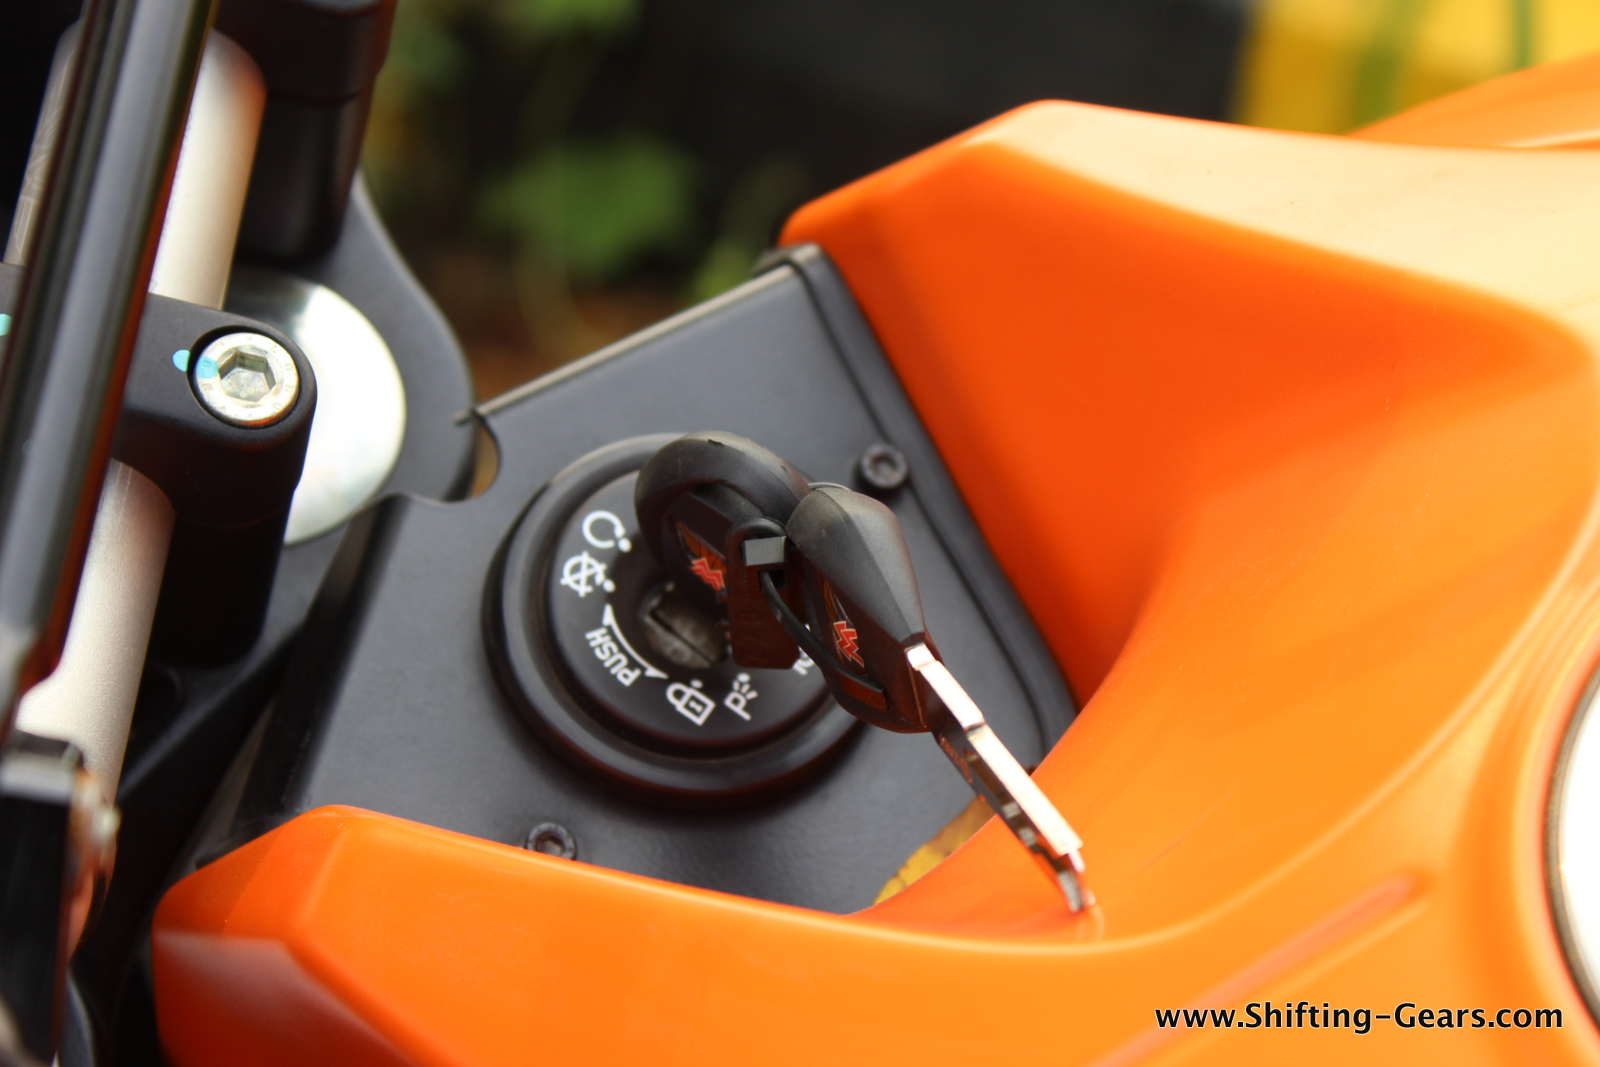 Keyhole is placed below the handlebar, ahead of the fuel tank